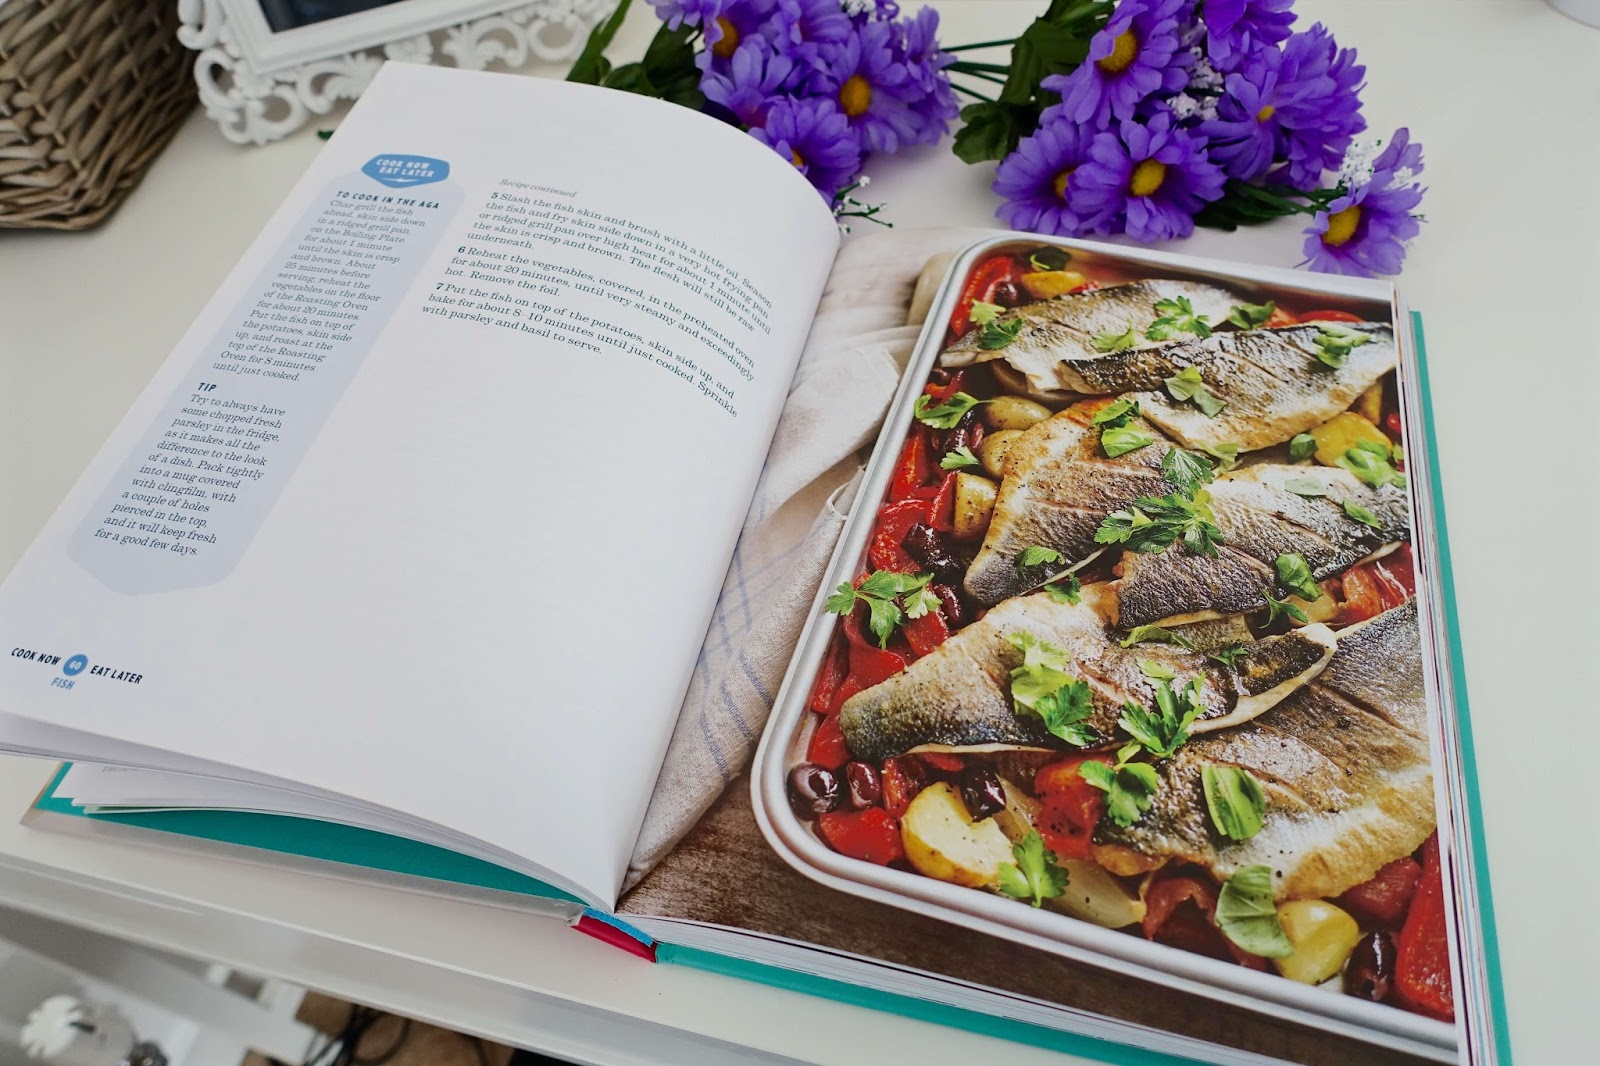 Recipe and food inspiration from cookery books